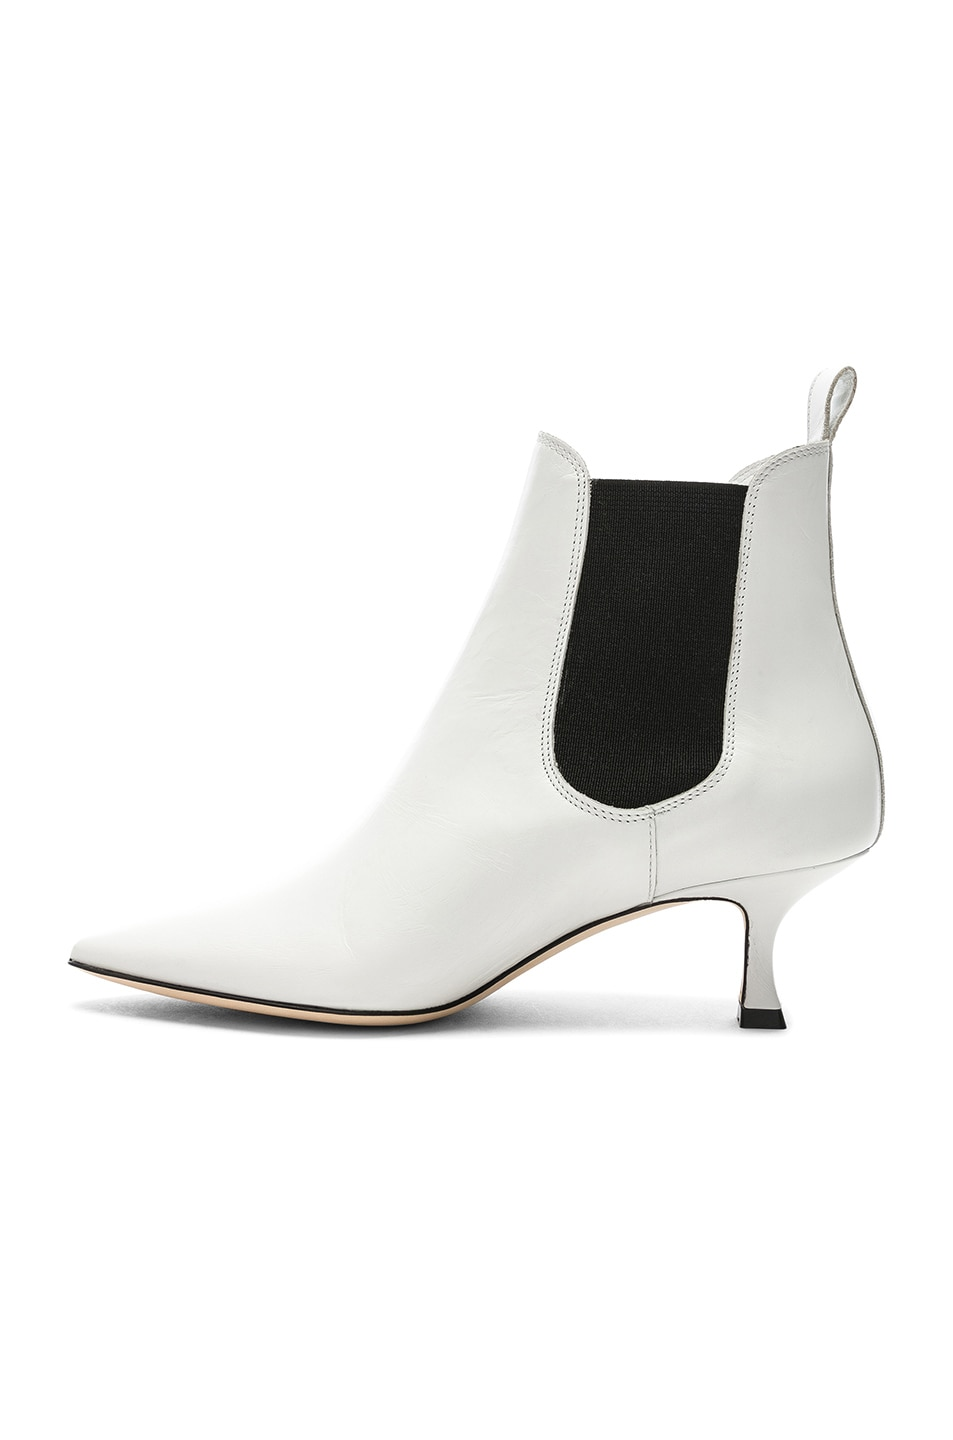 Image 5 of Manolo Blahnik Leather Chelsa 50 Boots in White